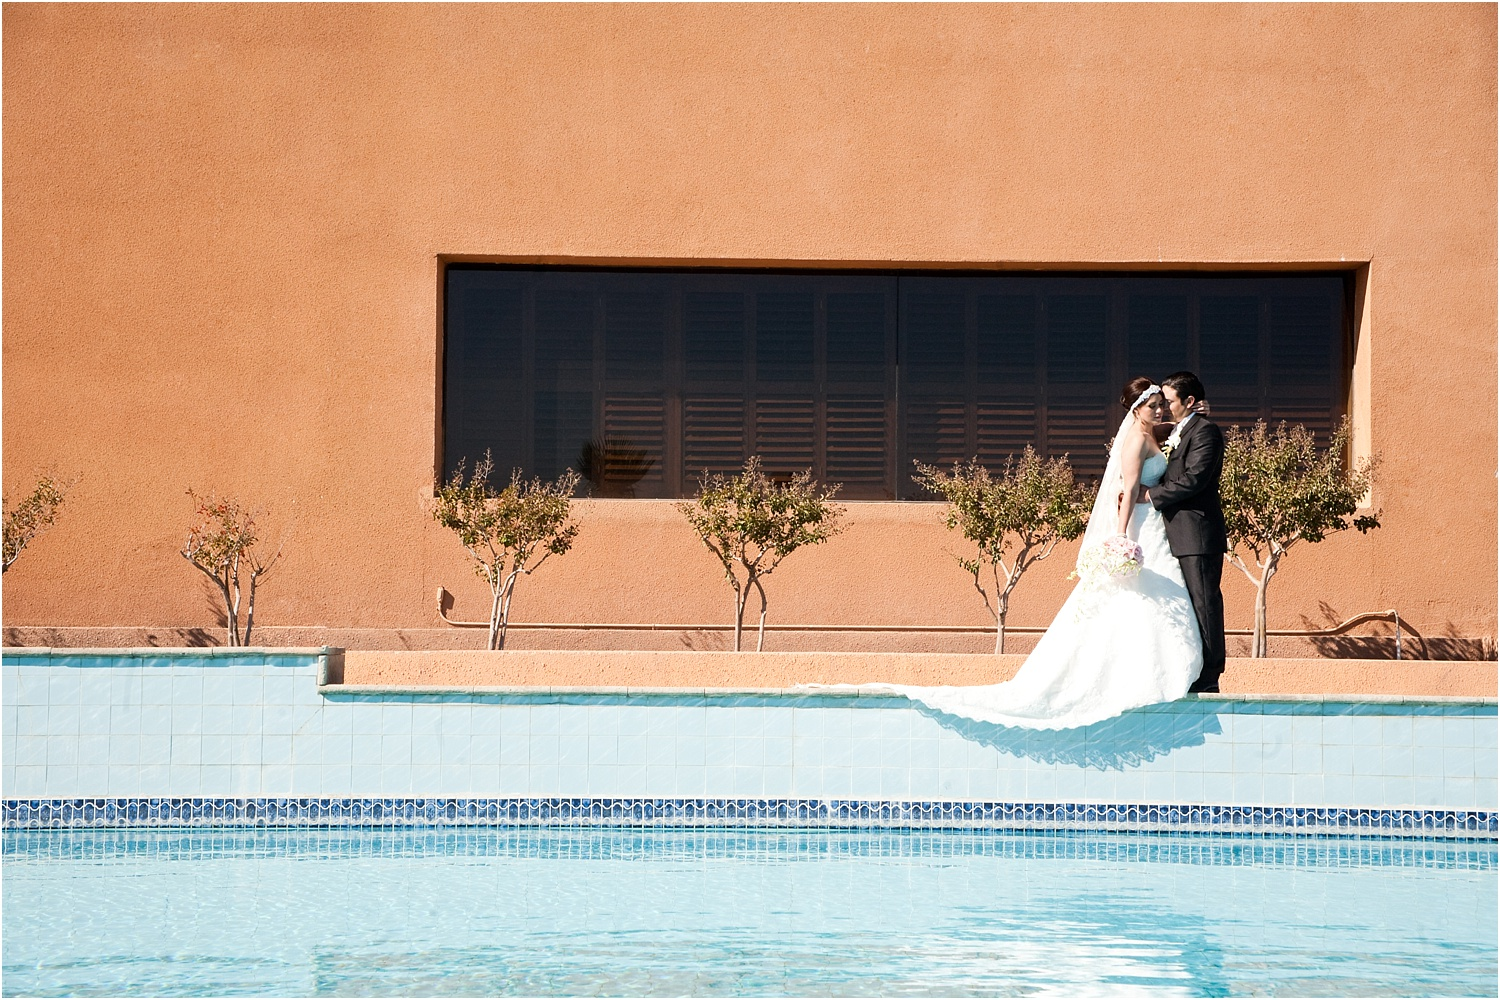 wedding couple by the pool - How to do Portrait Photography in Bright Midday Sun